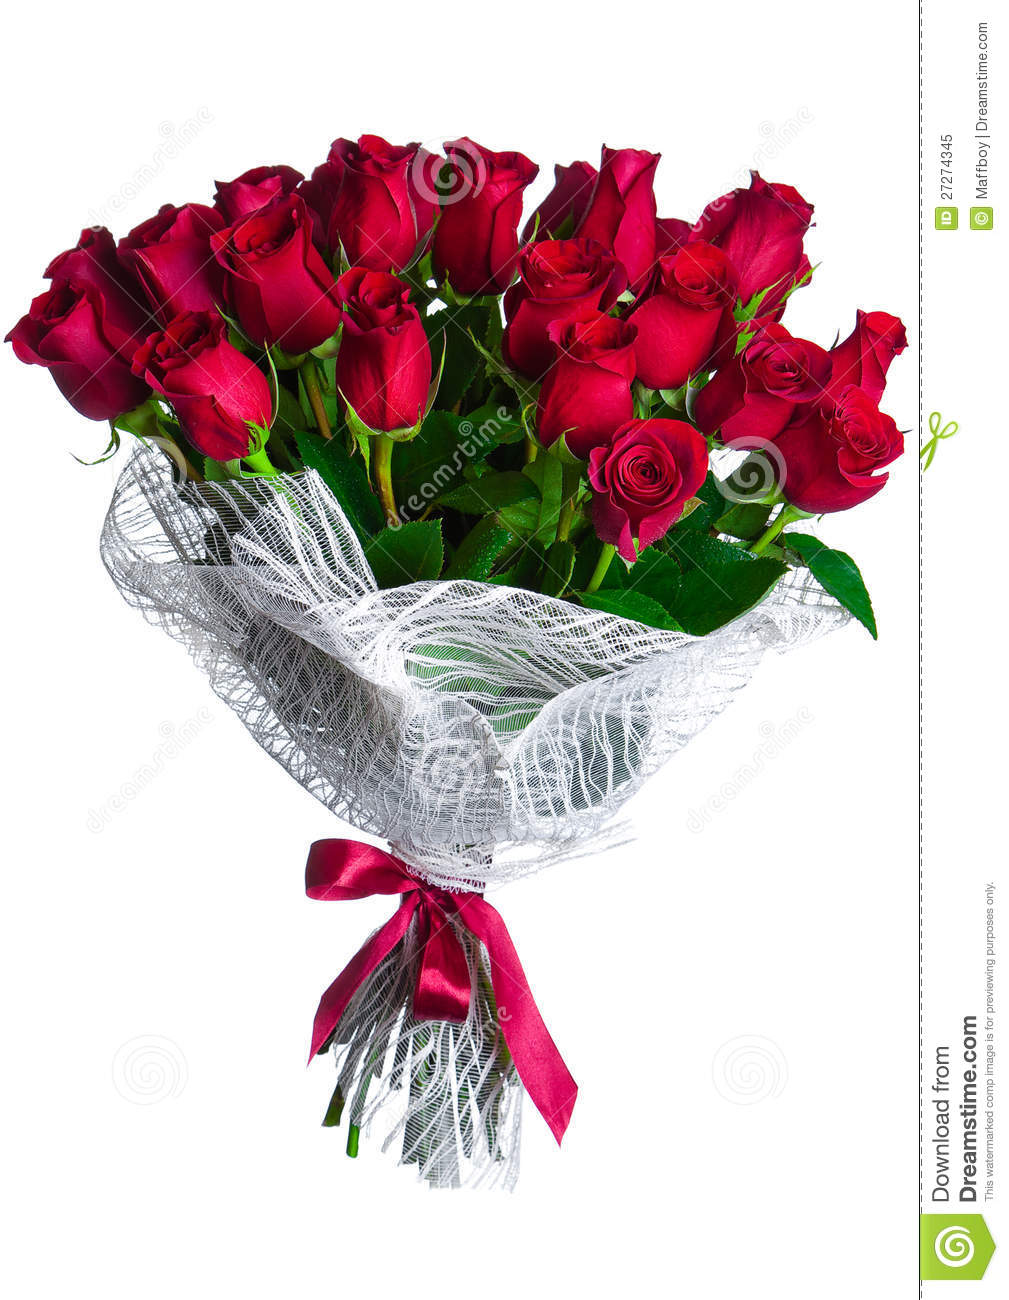 Rose Flowers Bouquet Isolated Stock Image Image Of Card Marry